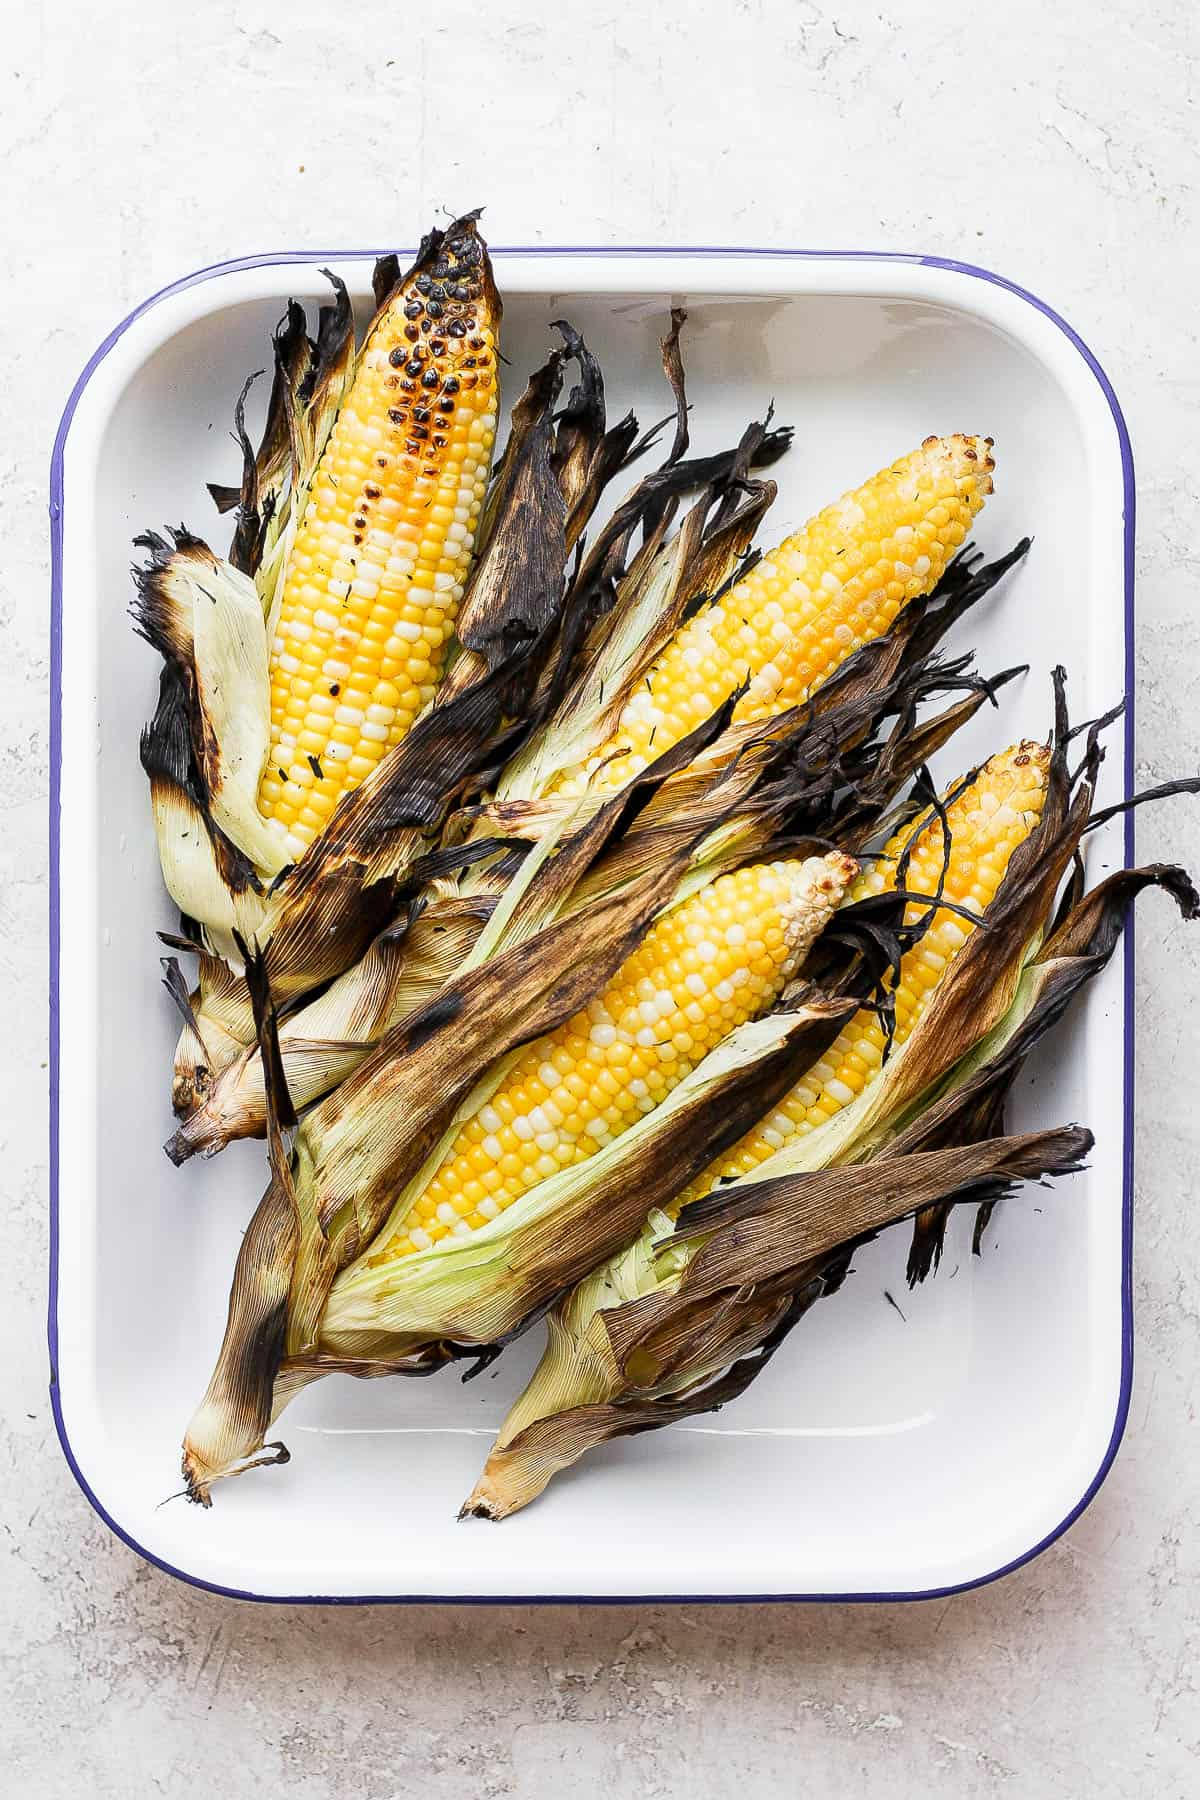 Pan of grilled corn with husks